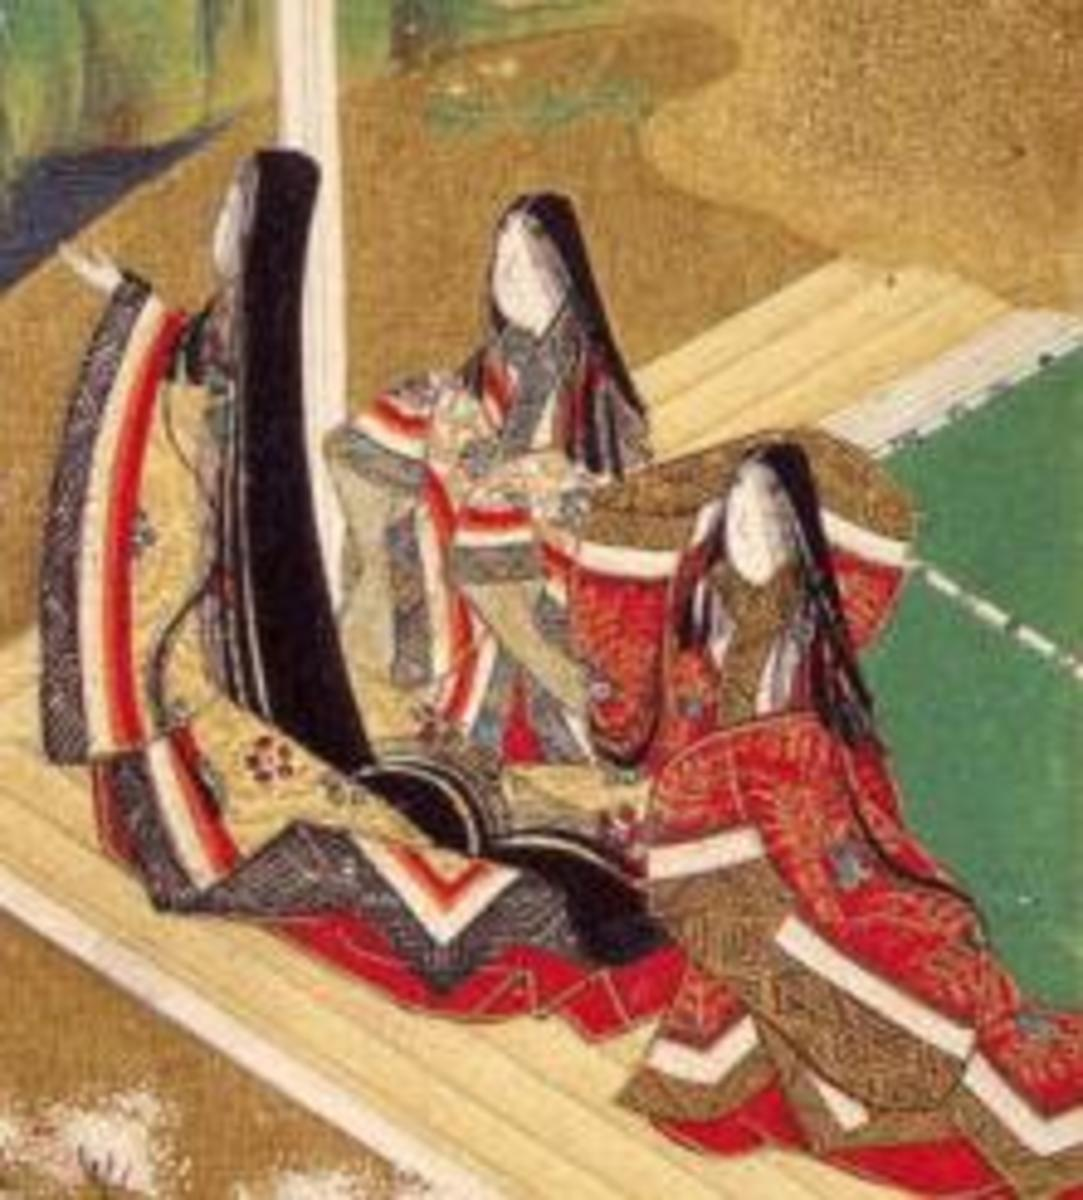 Heian ladies wearing juunihitoe, painted on a handscroll for the Tale of Genji.